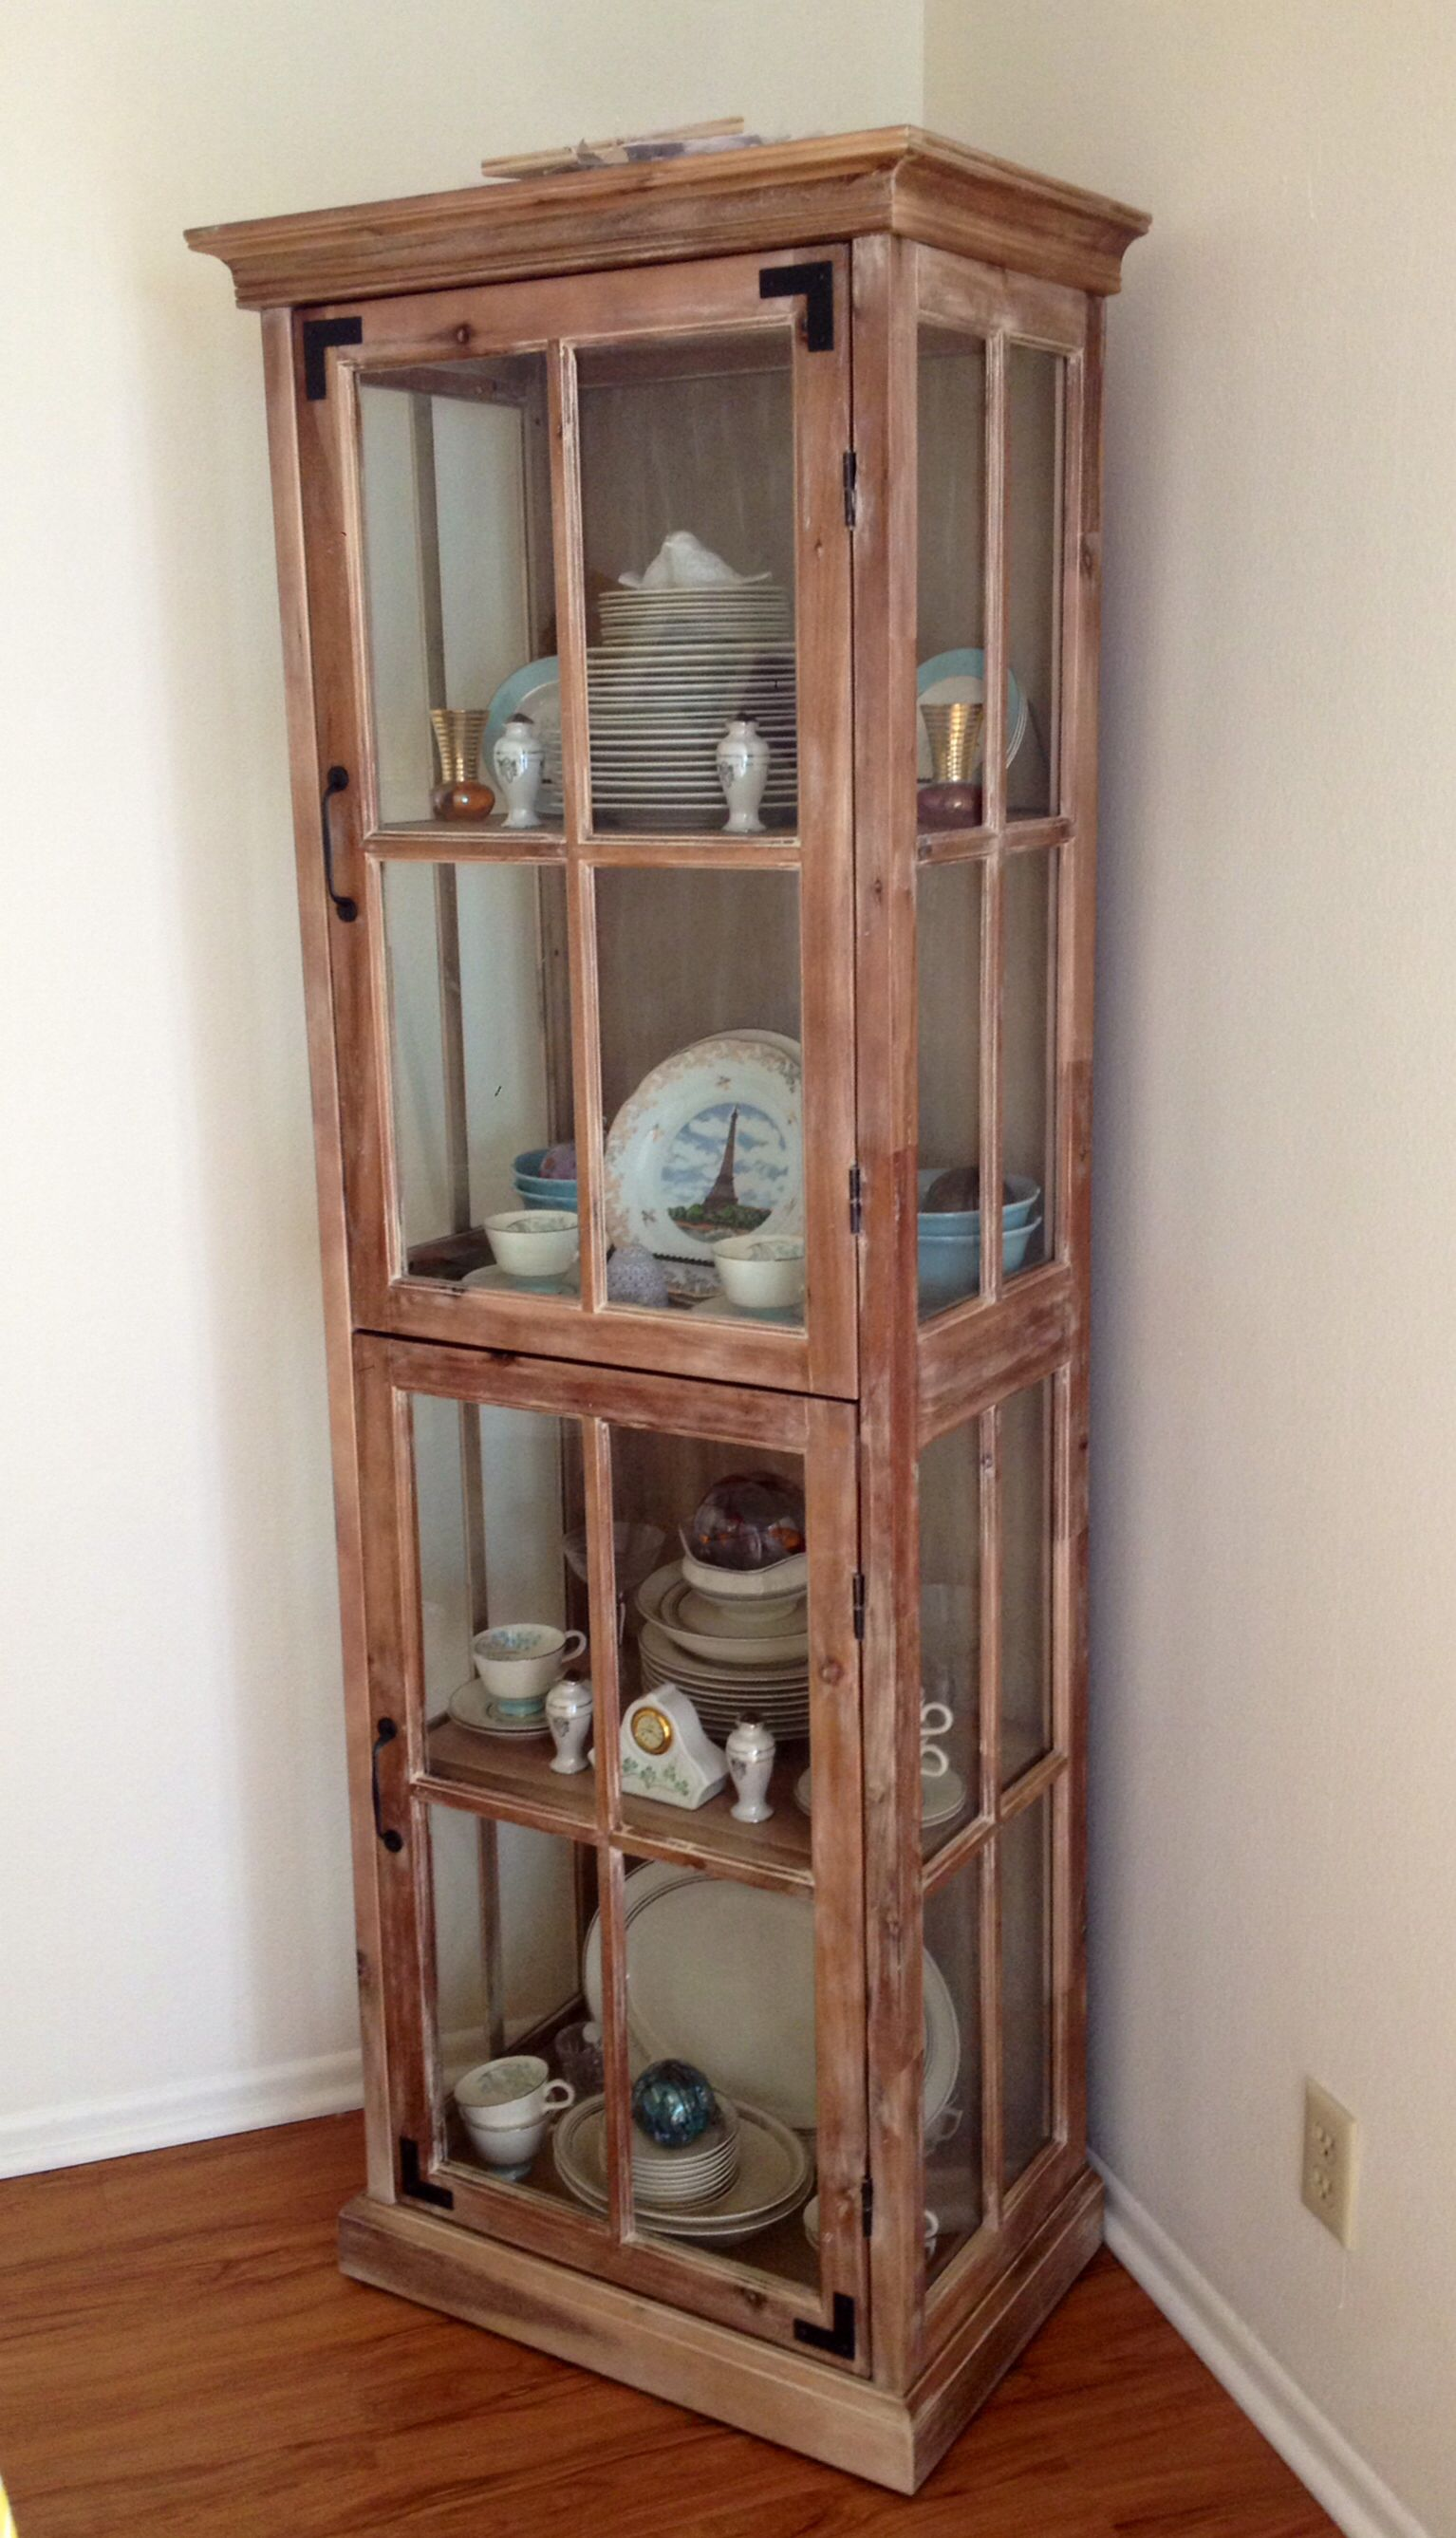 Cost Plus World Market Curio Cabinet Used As China Hutch In Dining Room